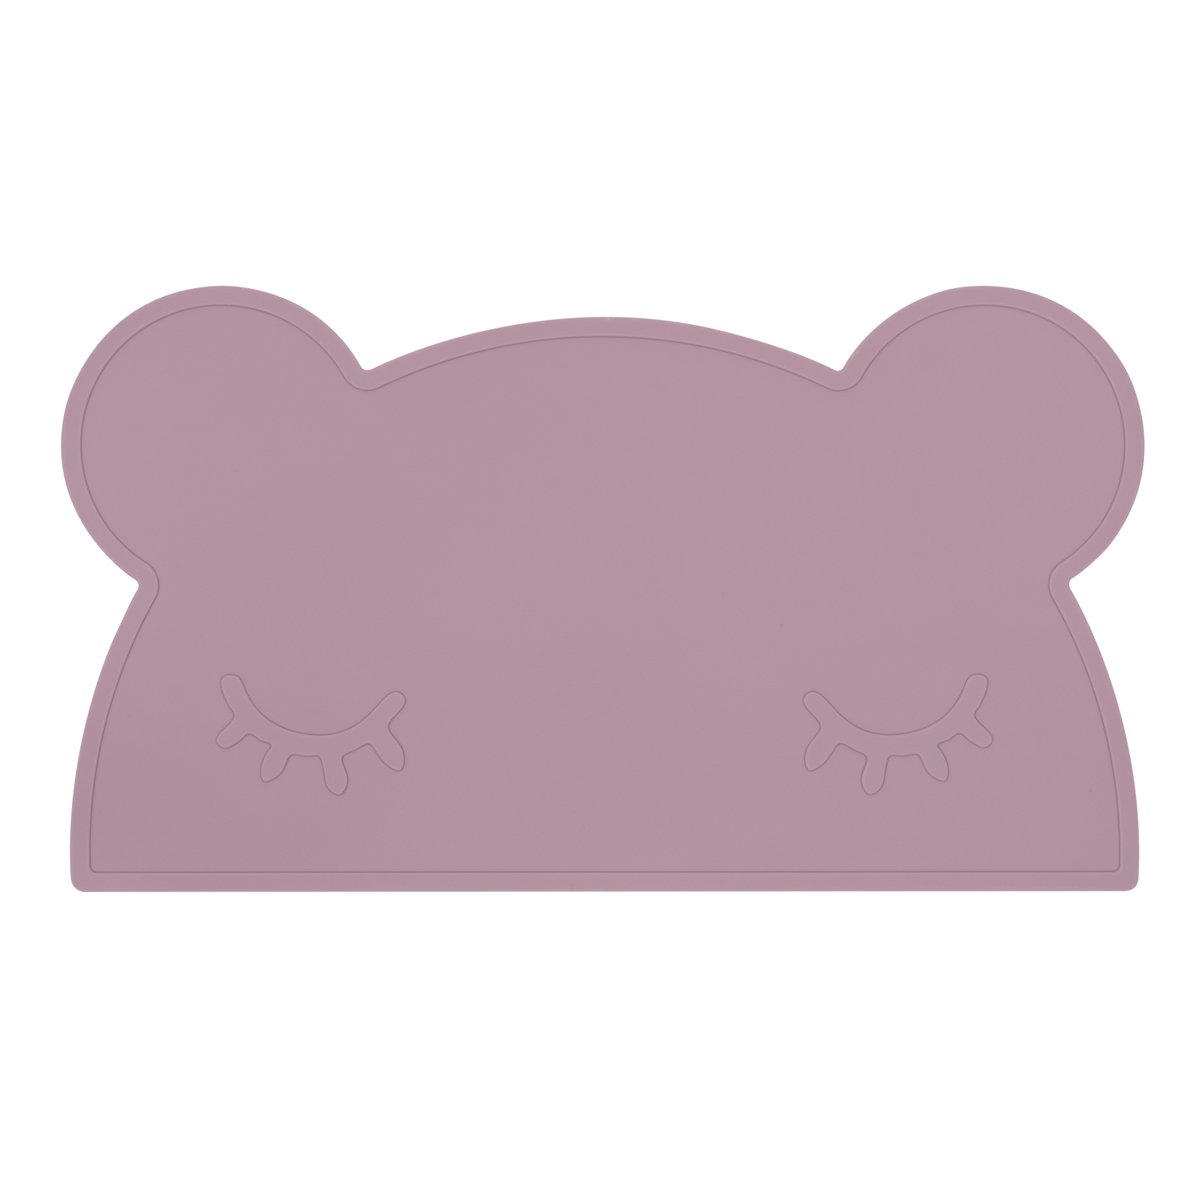 Bear Placemat (Dusty Rose)